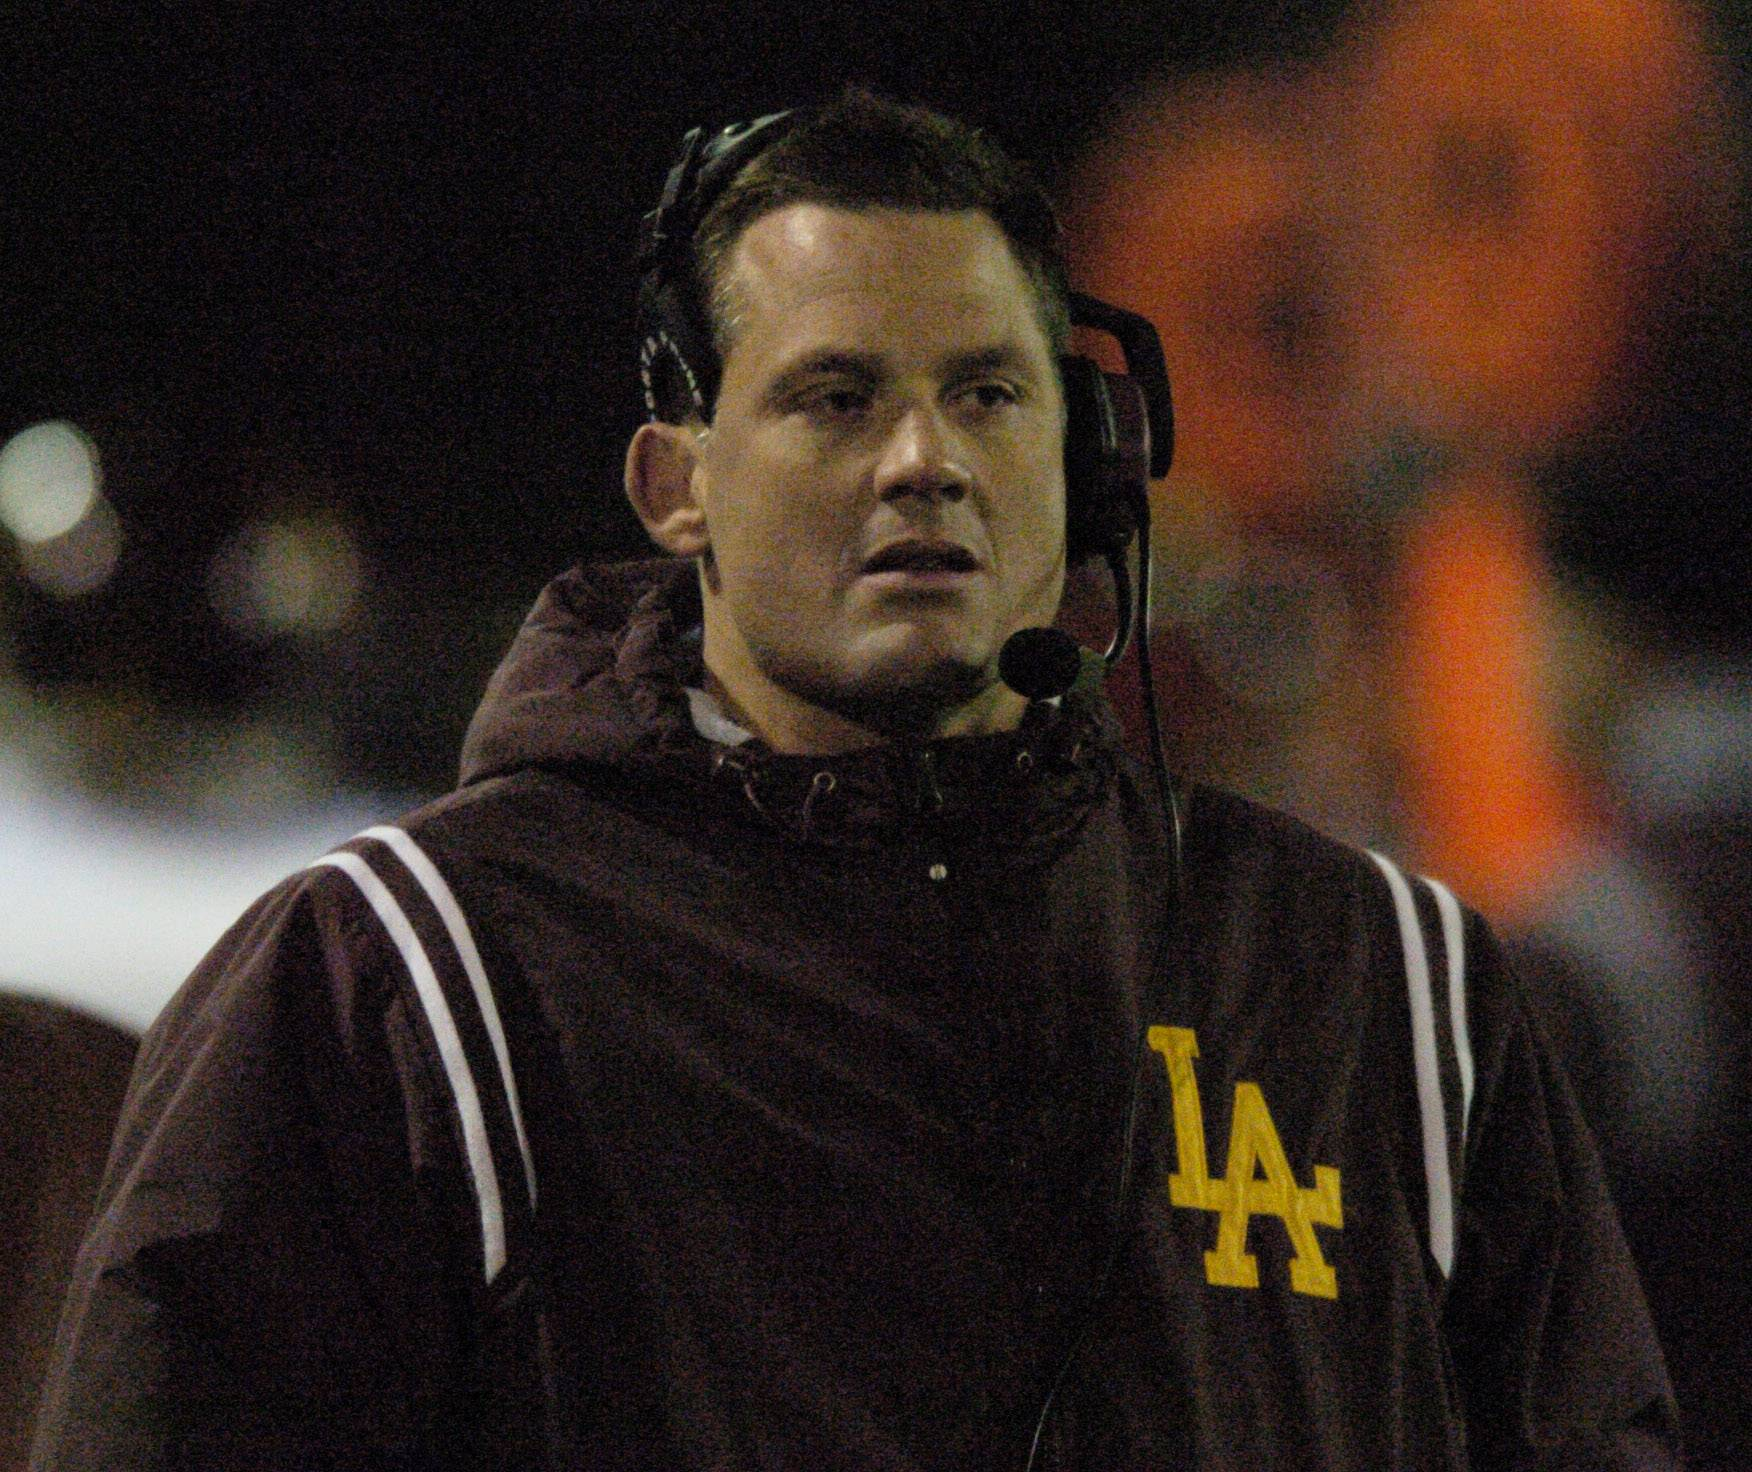 Loyola Academy is making its fifth state championship appearance in 11 years under head coach John Holecek. The Ramblers meet Lincoln-Way East at 7 p.m. Saturday at Huskie Stadium in DeKalb.